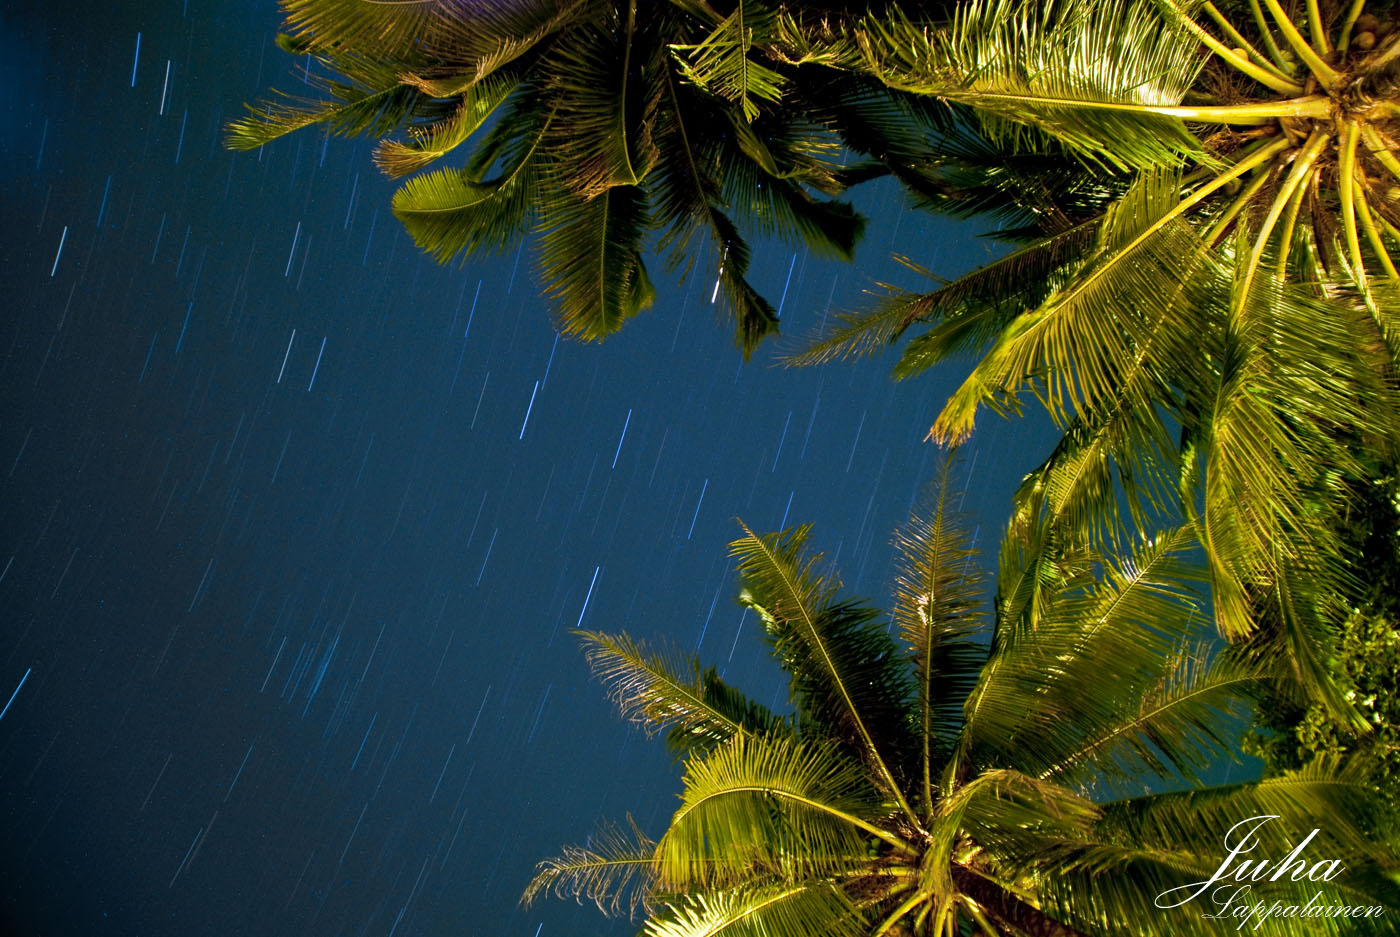 starry night under the coconut trees juha lappalainen photography